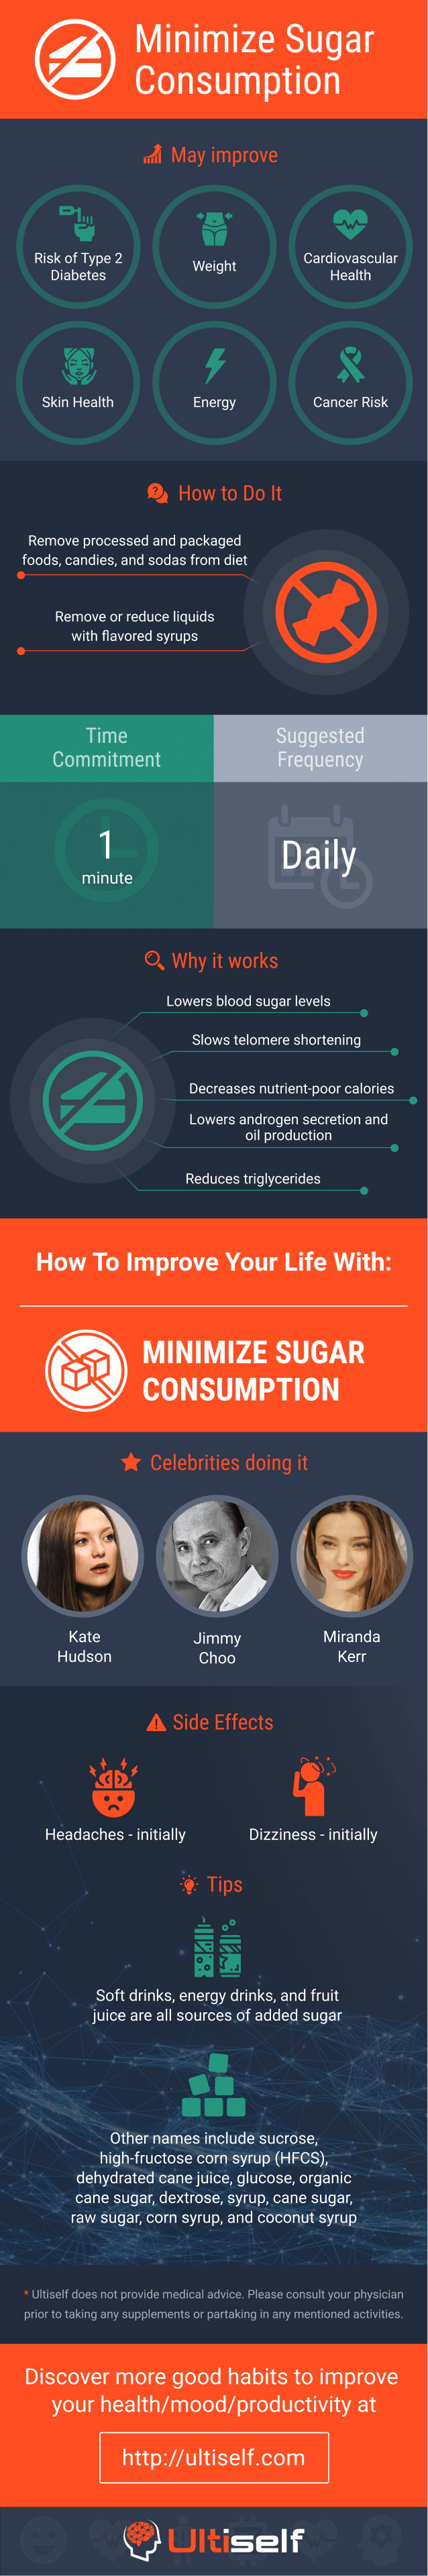 Minimize Sugar Consumption infographic